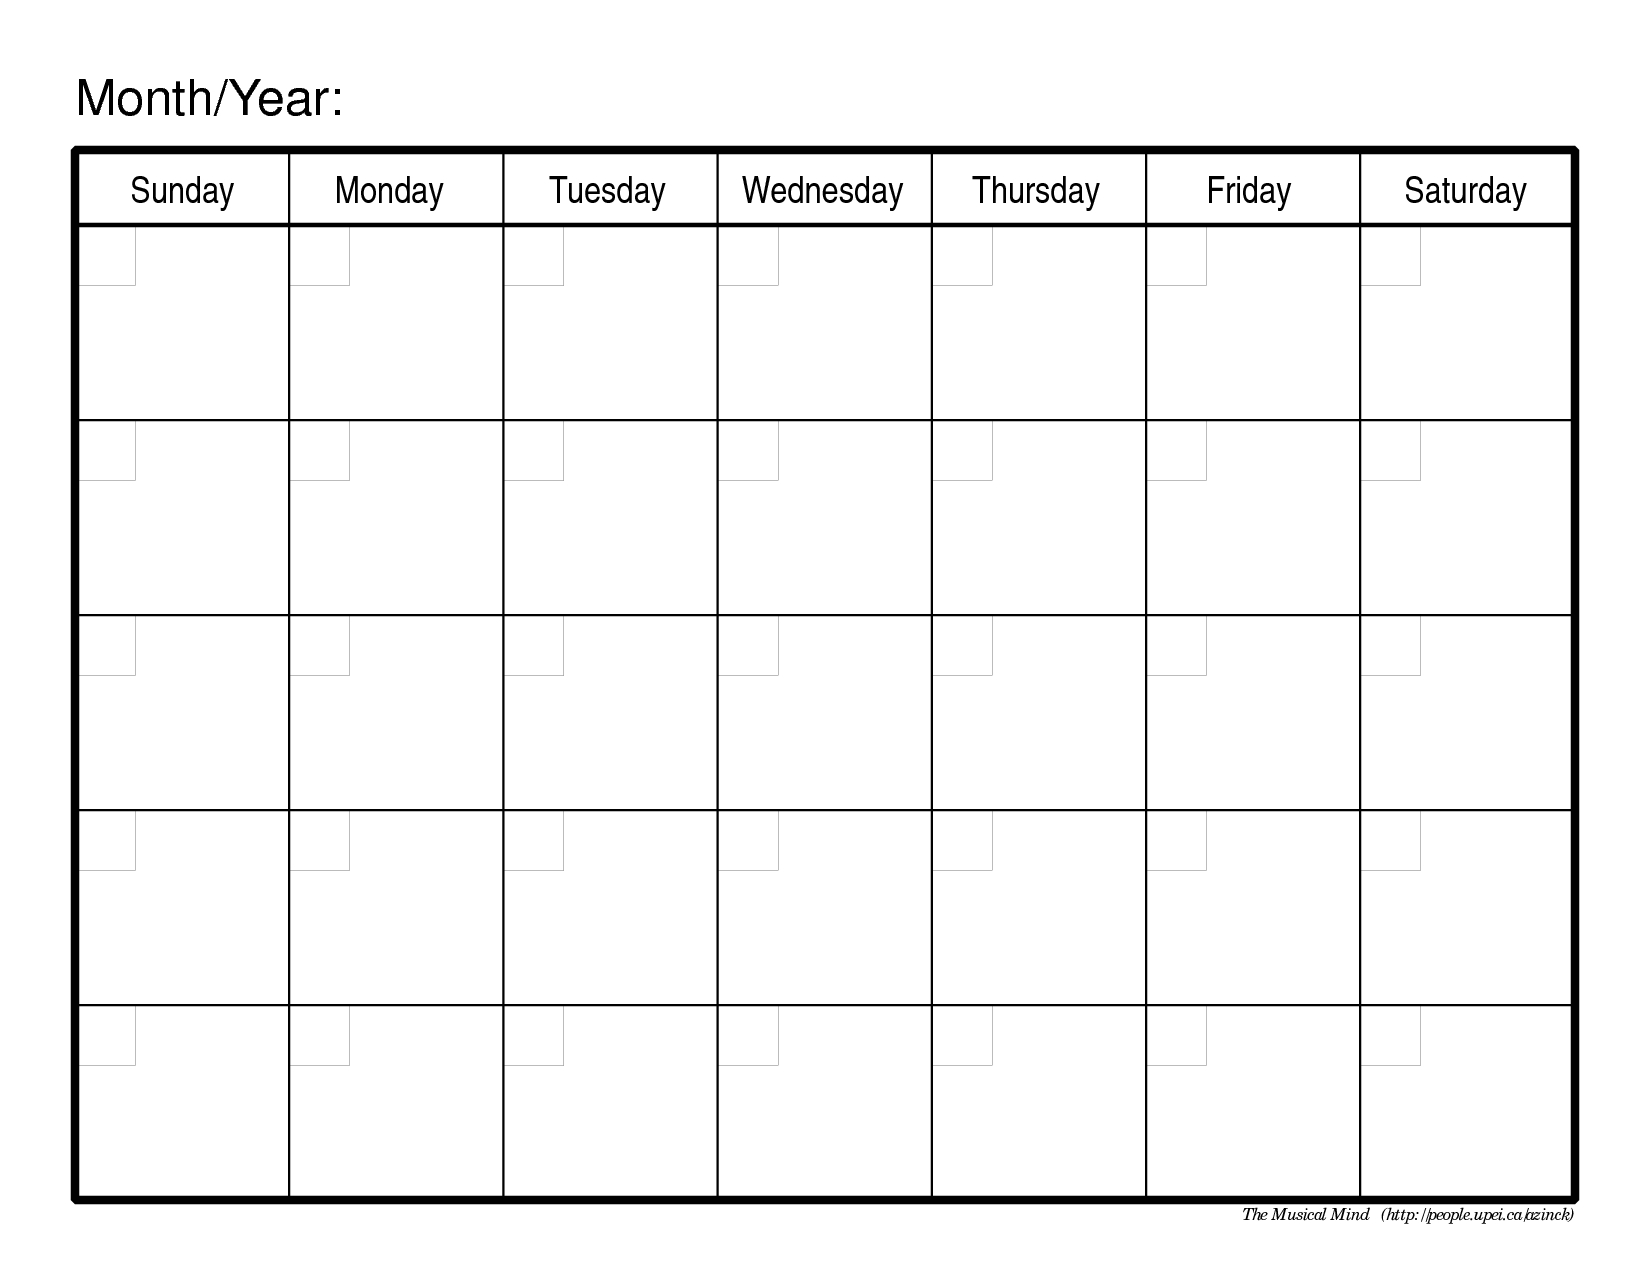 Monthly Calendar Print Out : Blank monthly calendar print out free template